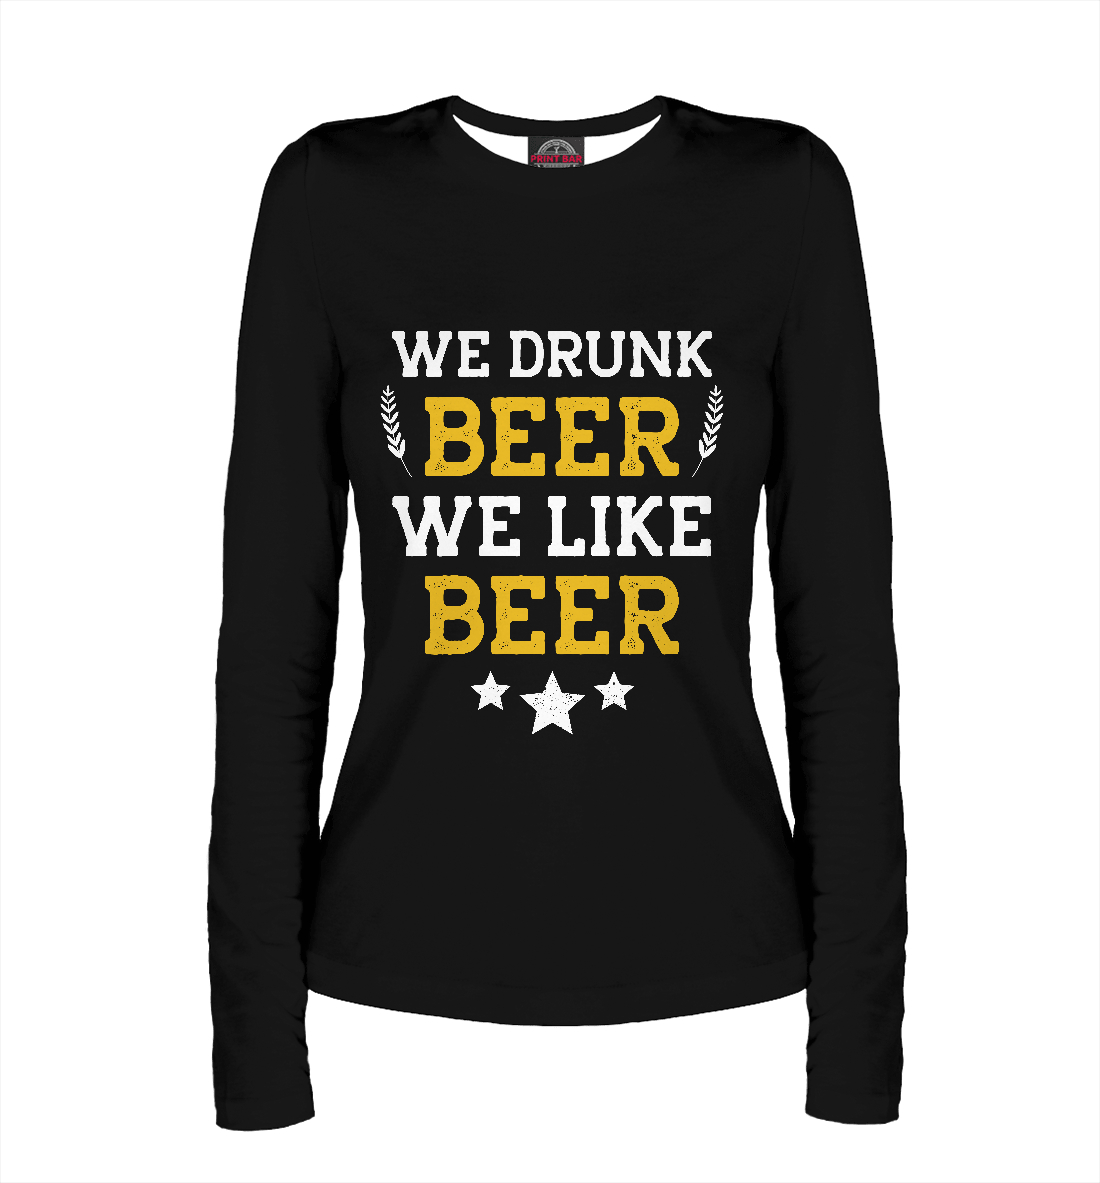 We drunk beer we like